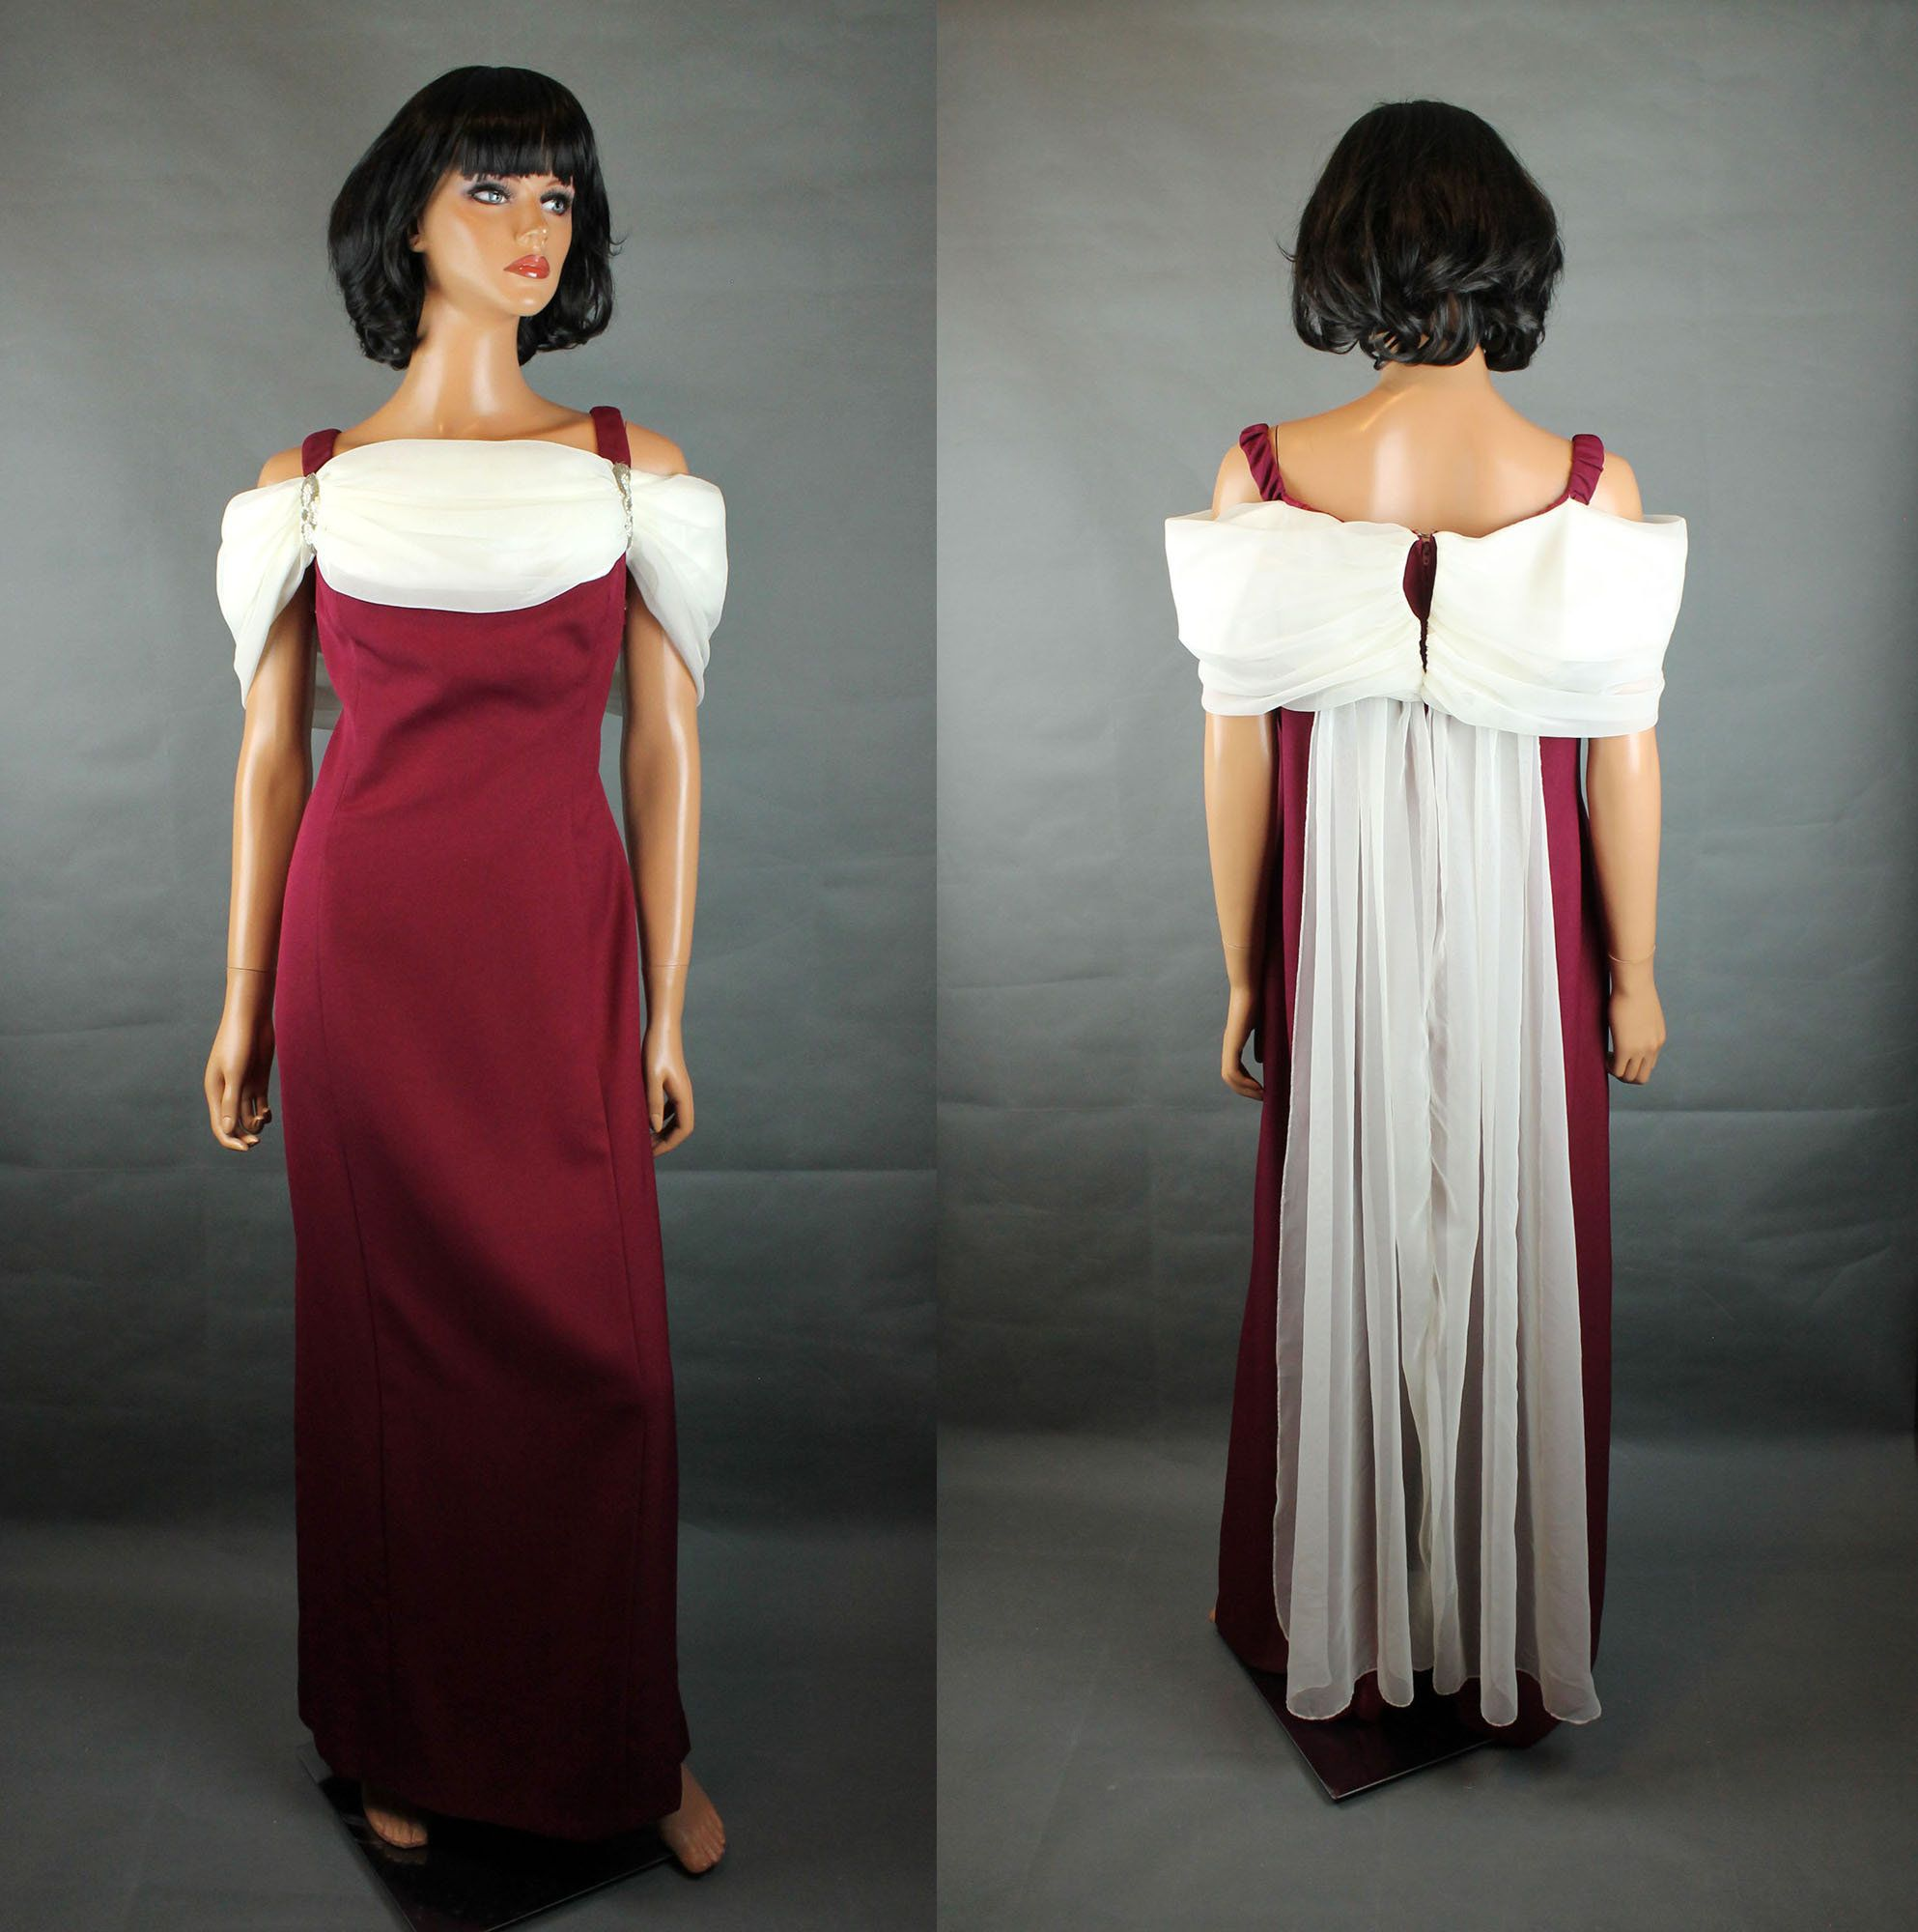 90s Prom Dress Sz Xl Vintage Dark Maroon Burgundy Red White Chiffon Long Gown Free Us Shipping By Hepcatclothes O Dresses 90s Prom Dress Vintage Formal Dresses [ 2000 x 1986 Pixel ]